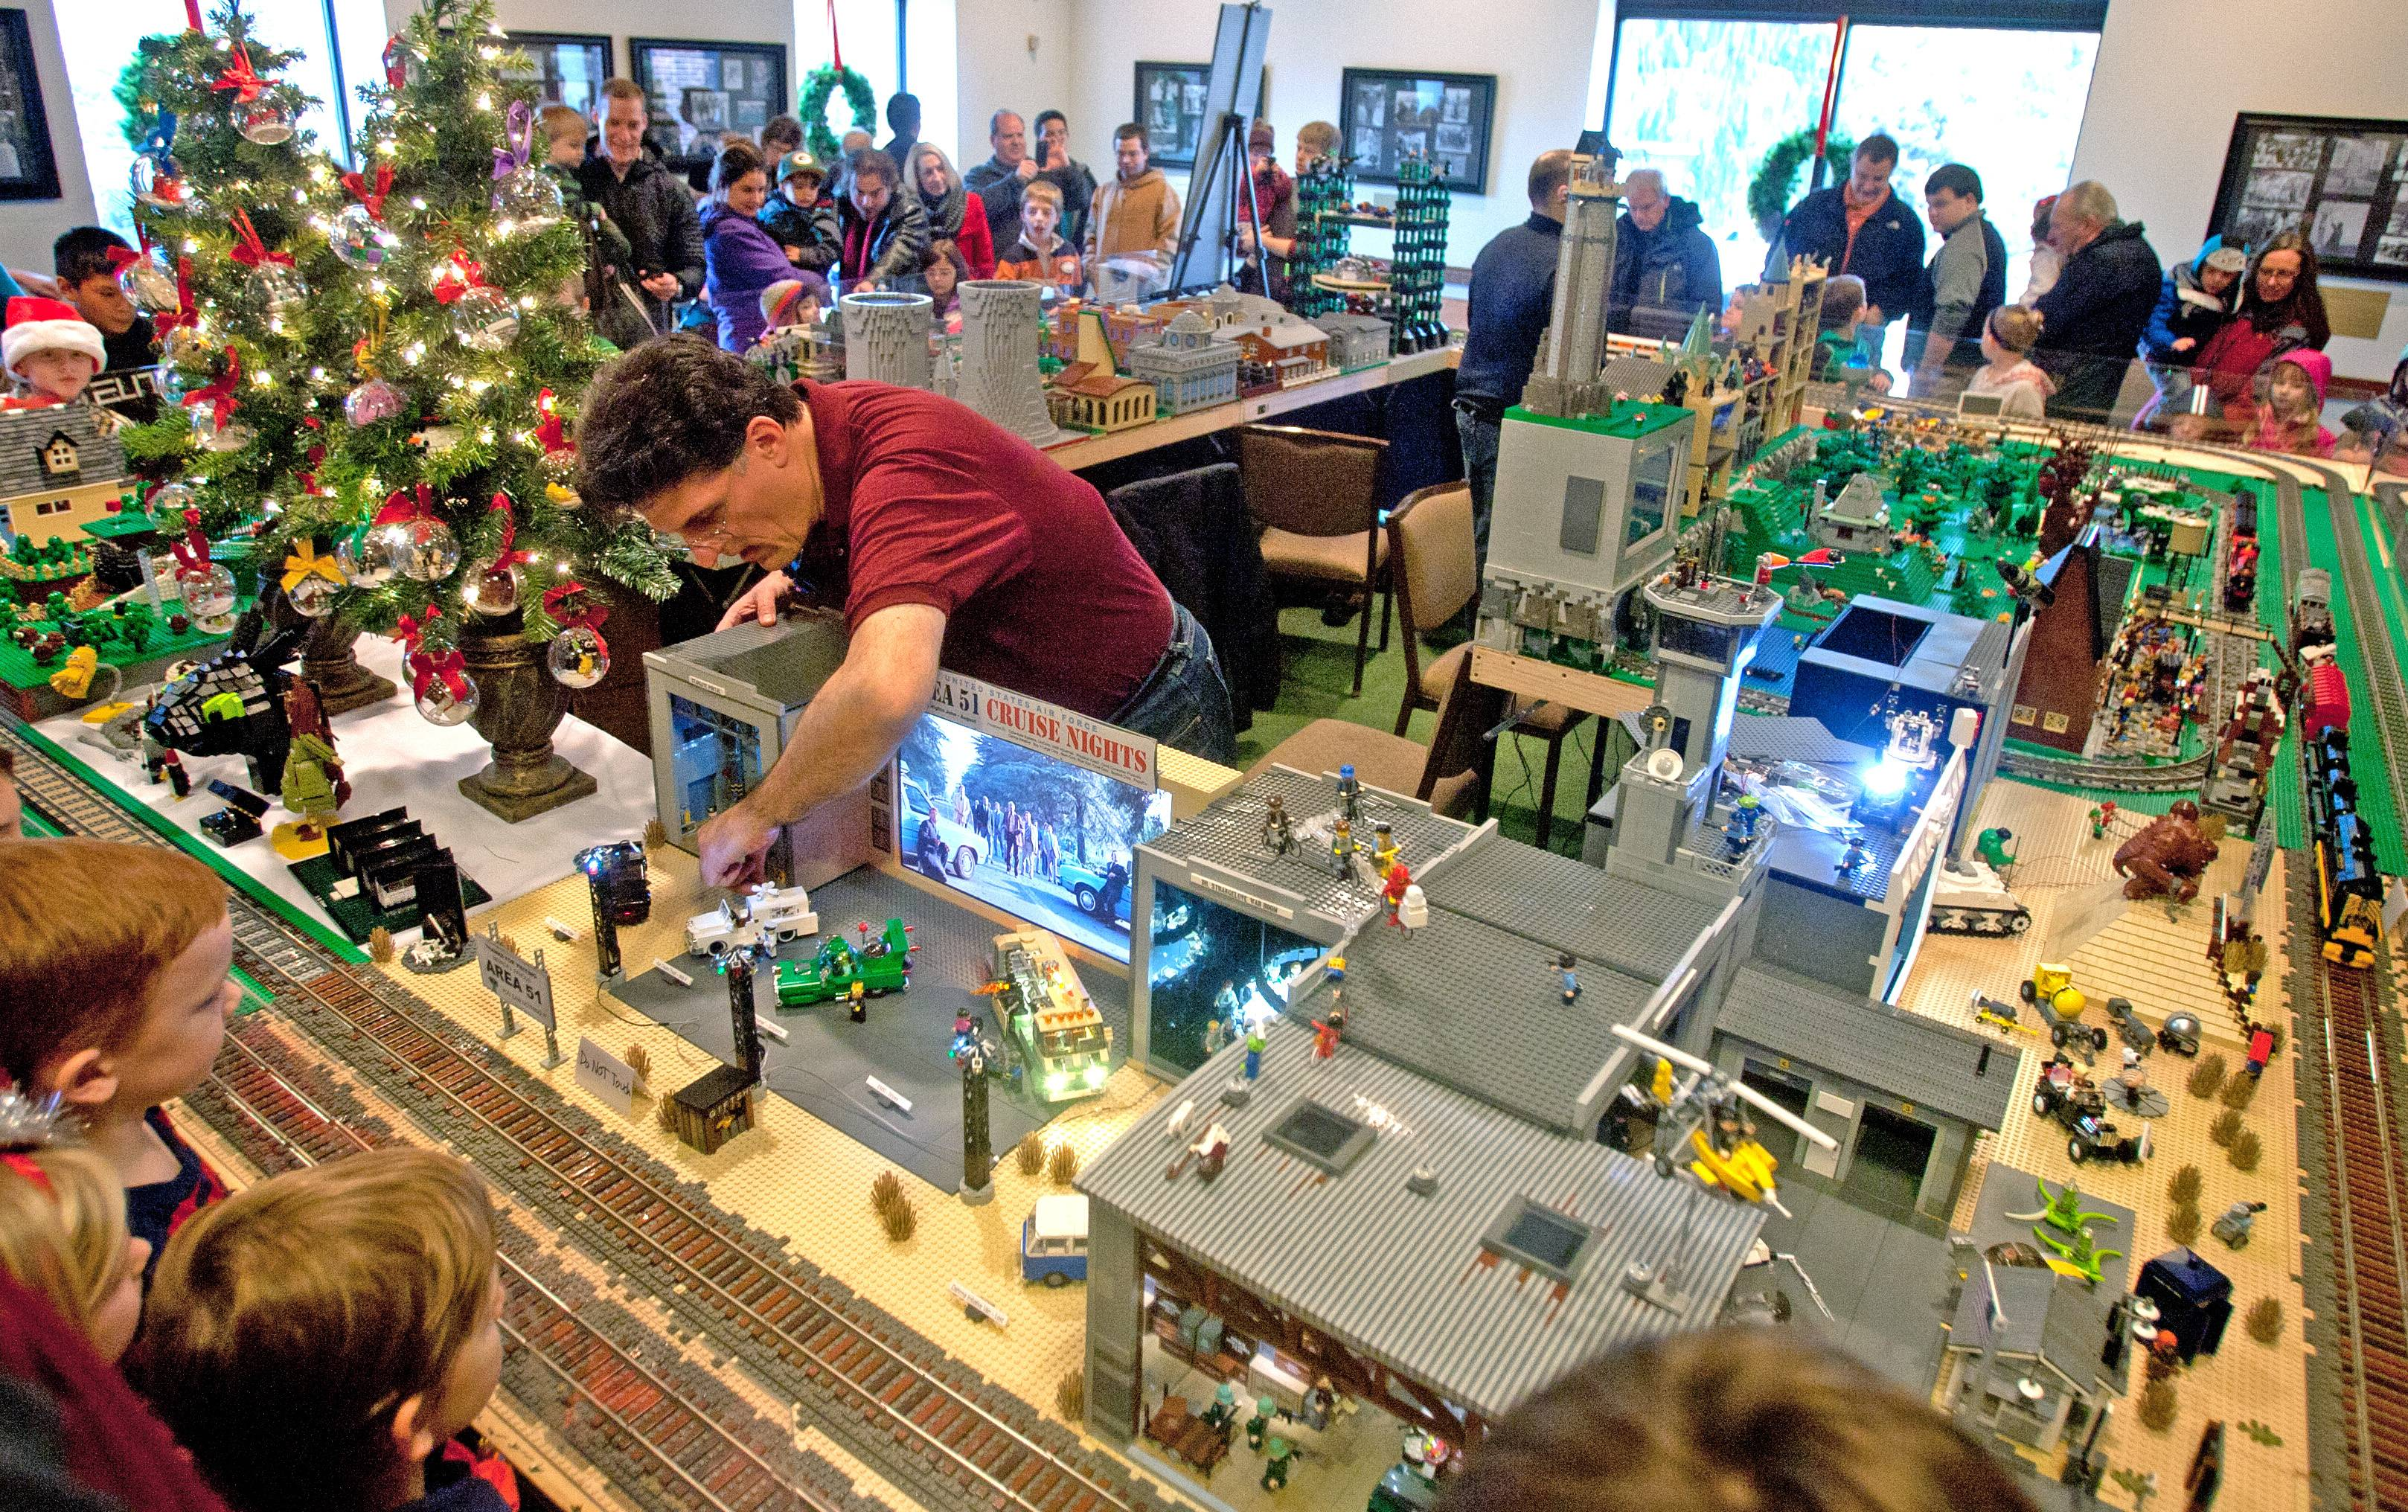 Thousands of fans are expected to attend the Lego Train Show this weekend at Cantigny Park in Wheaton.